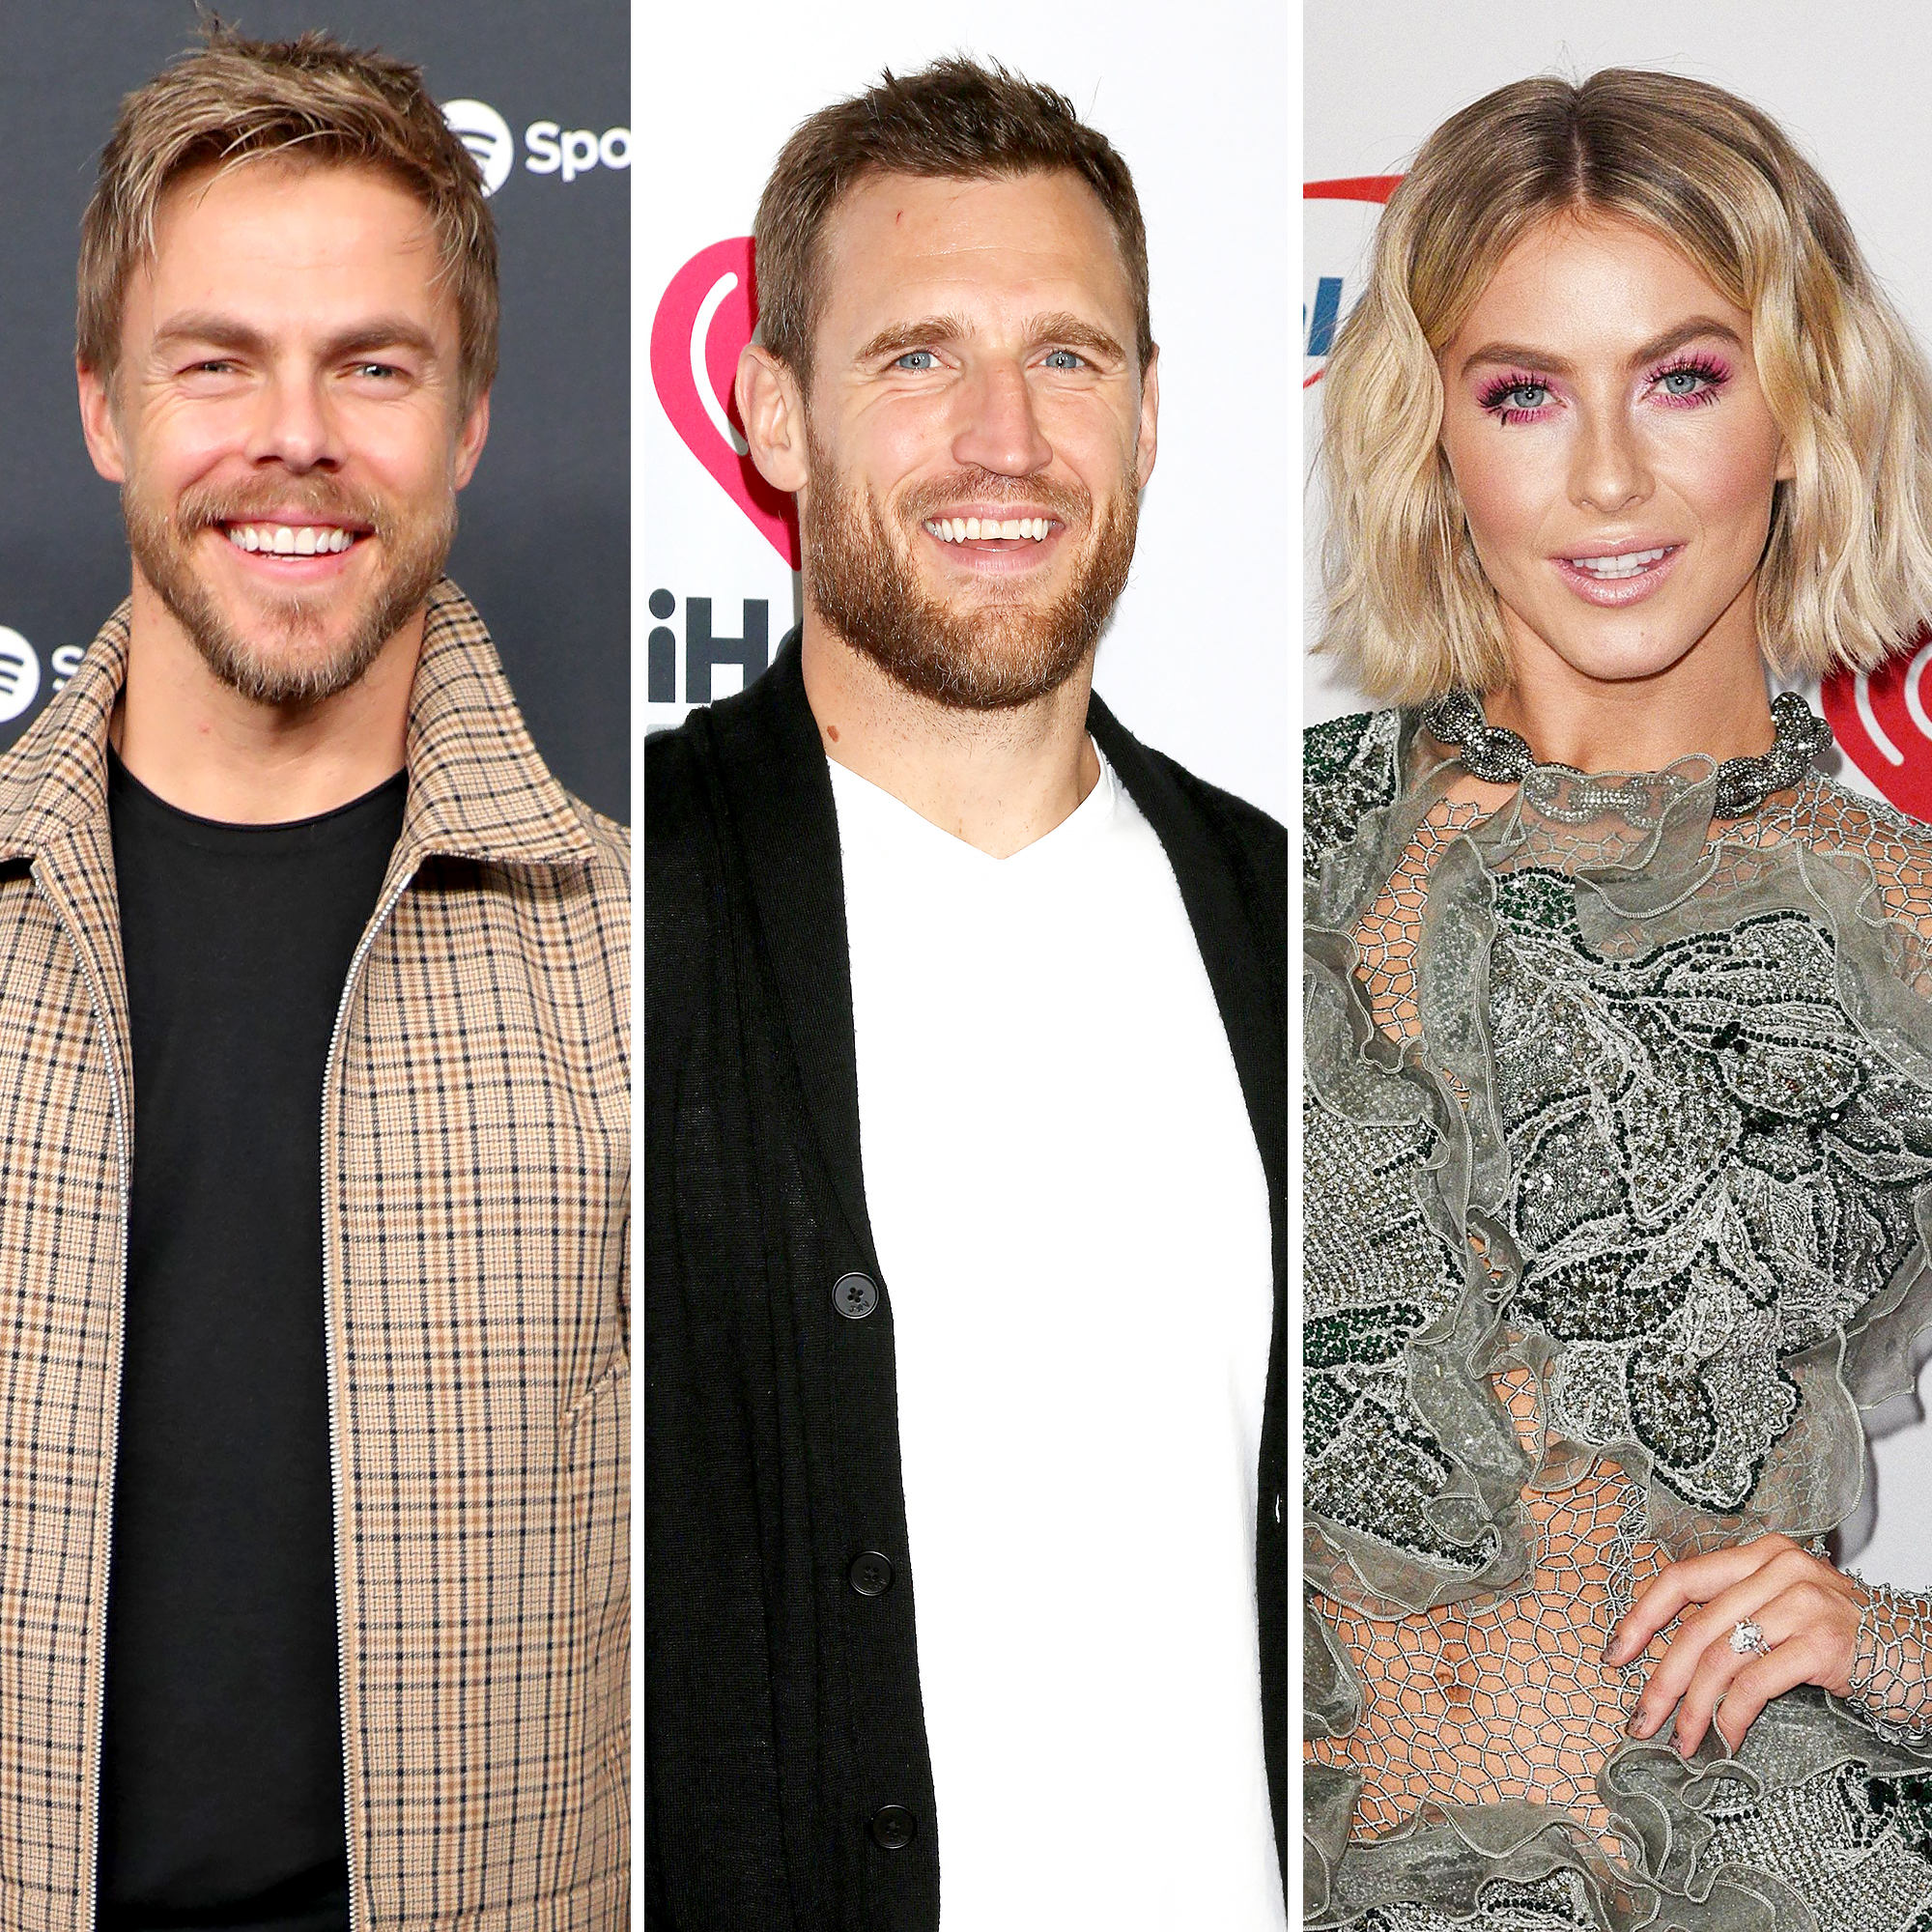 Derek Hough Still Has Love for Brooks Laich Amid Julianne Hough Split